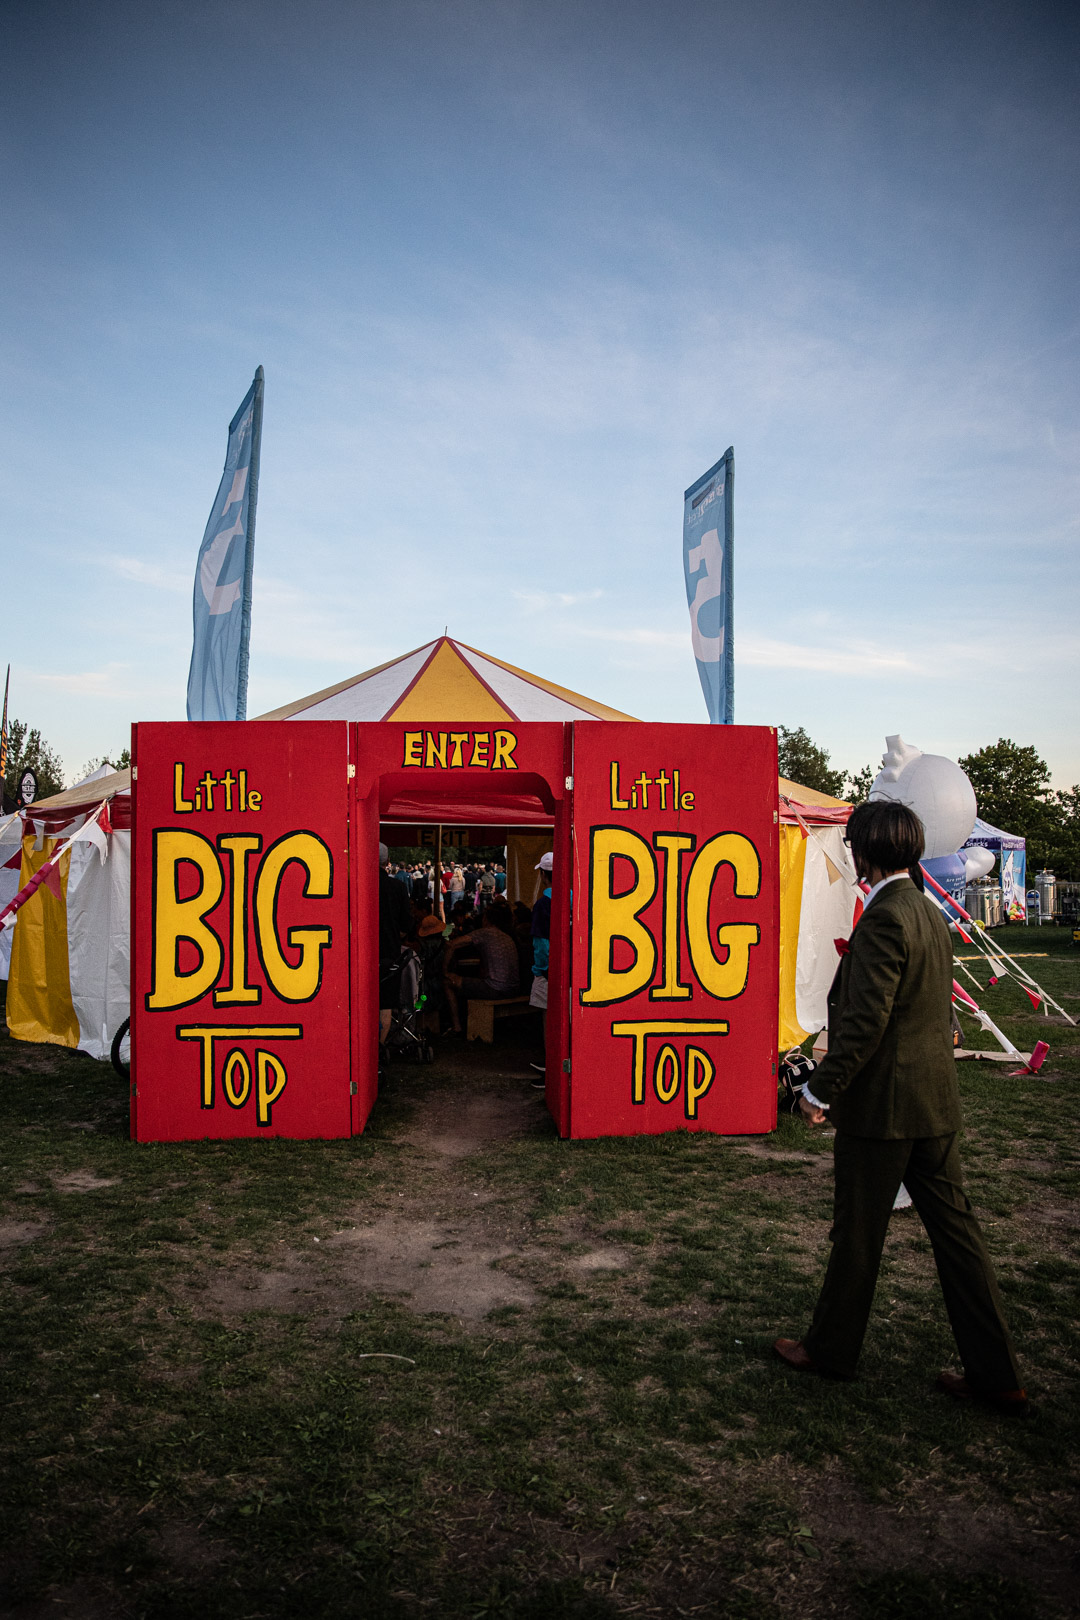 Looking Inside The Little Big Top